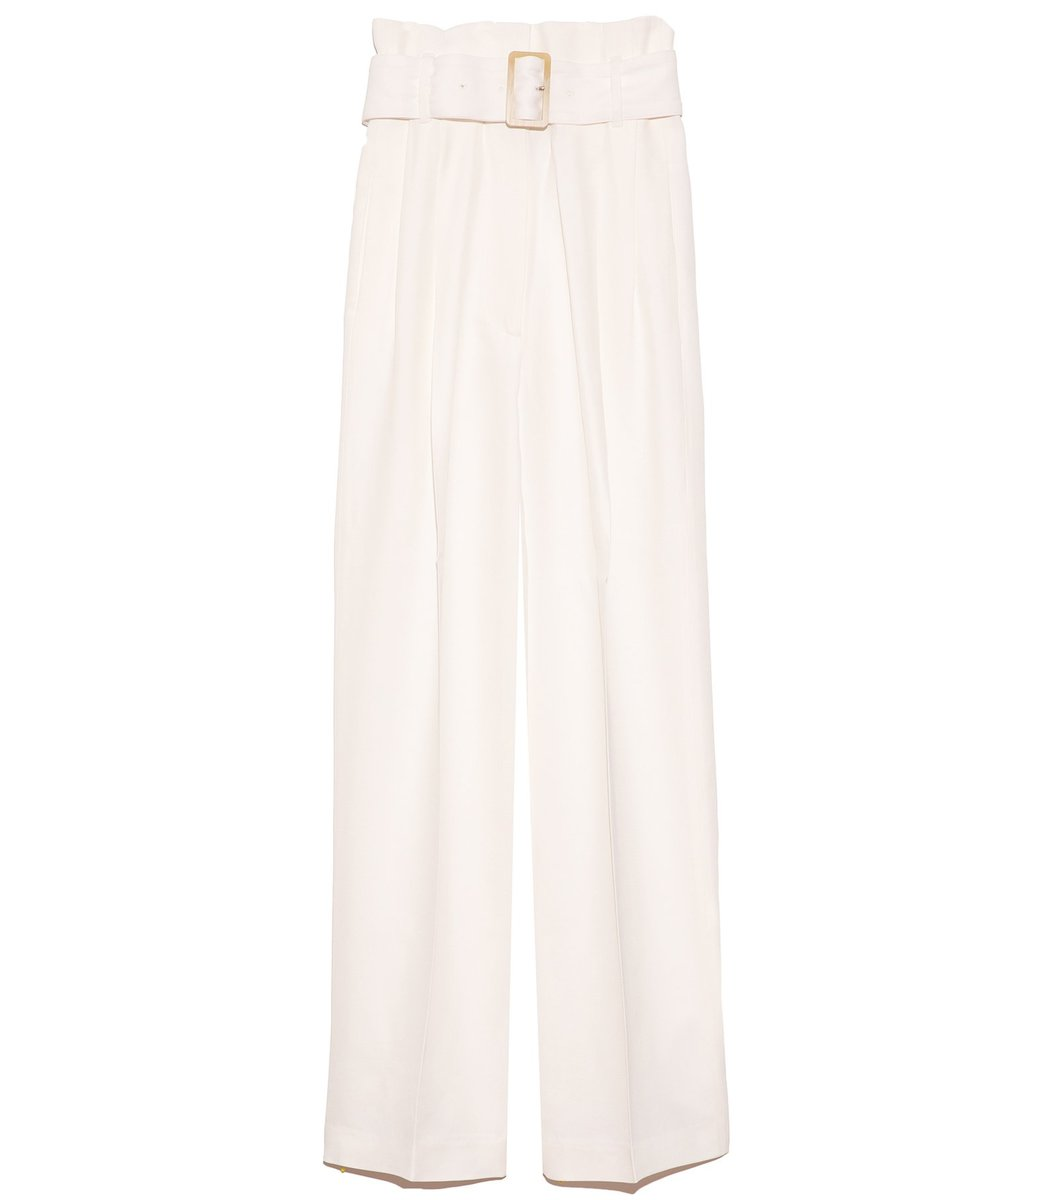 Golden Goose Linings Cleofe Pant with Belt in Optic White